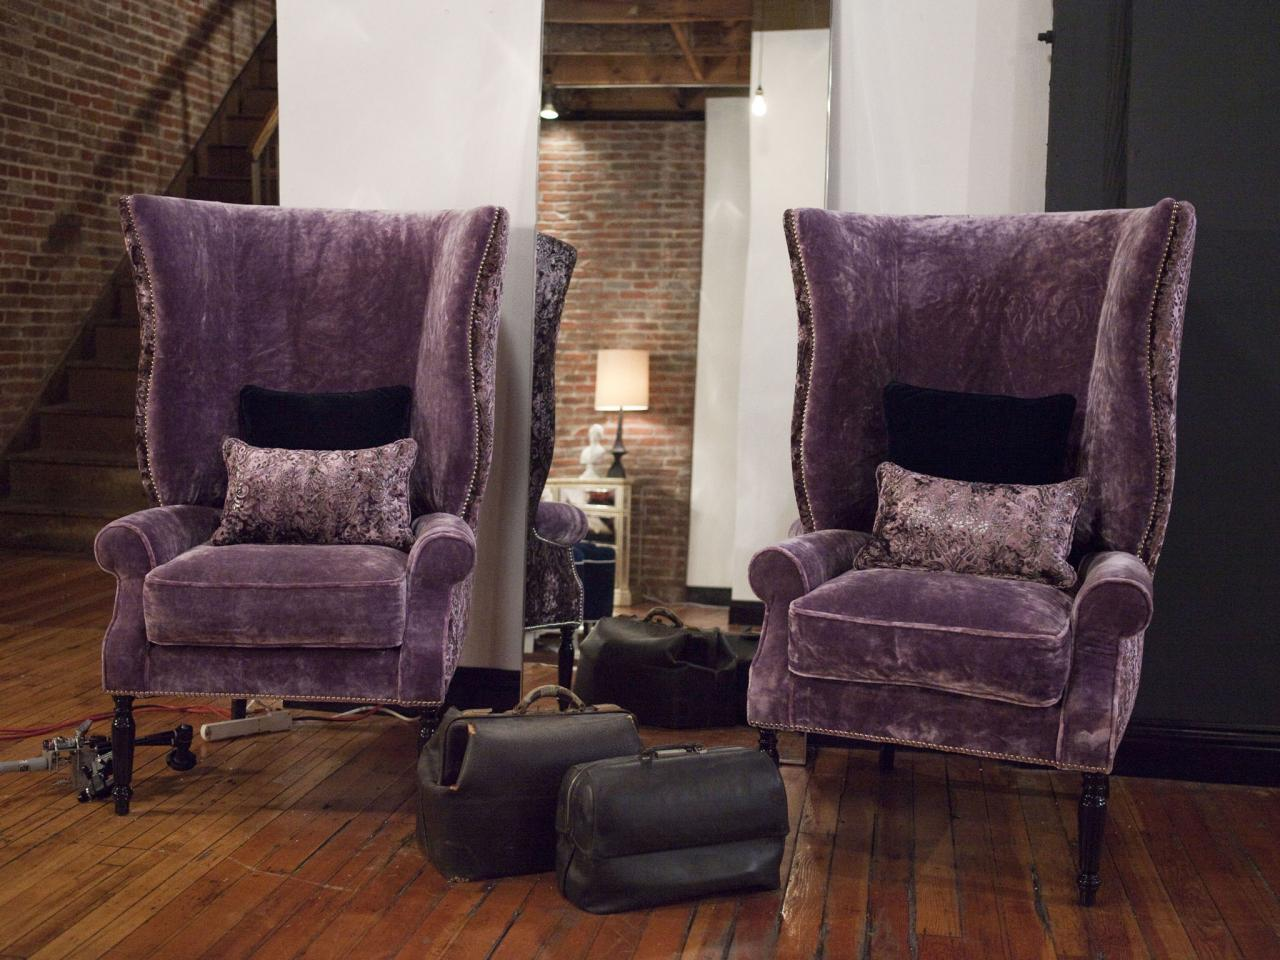 Captivating wing back chair with Solid Strong wood Furniture Design for Dining chair and Living Room Chair Ideas